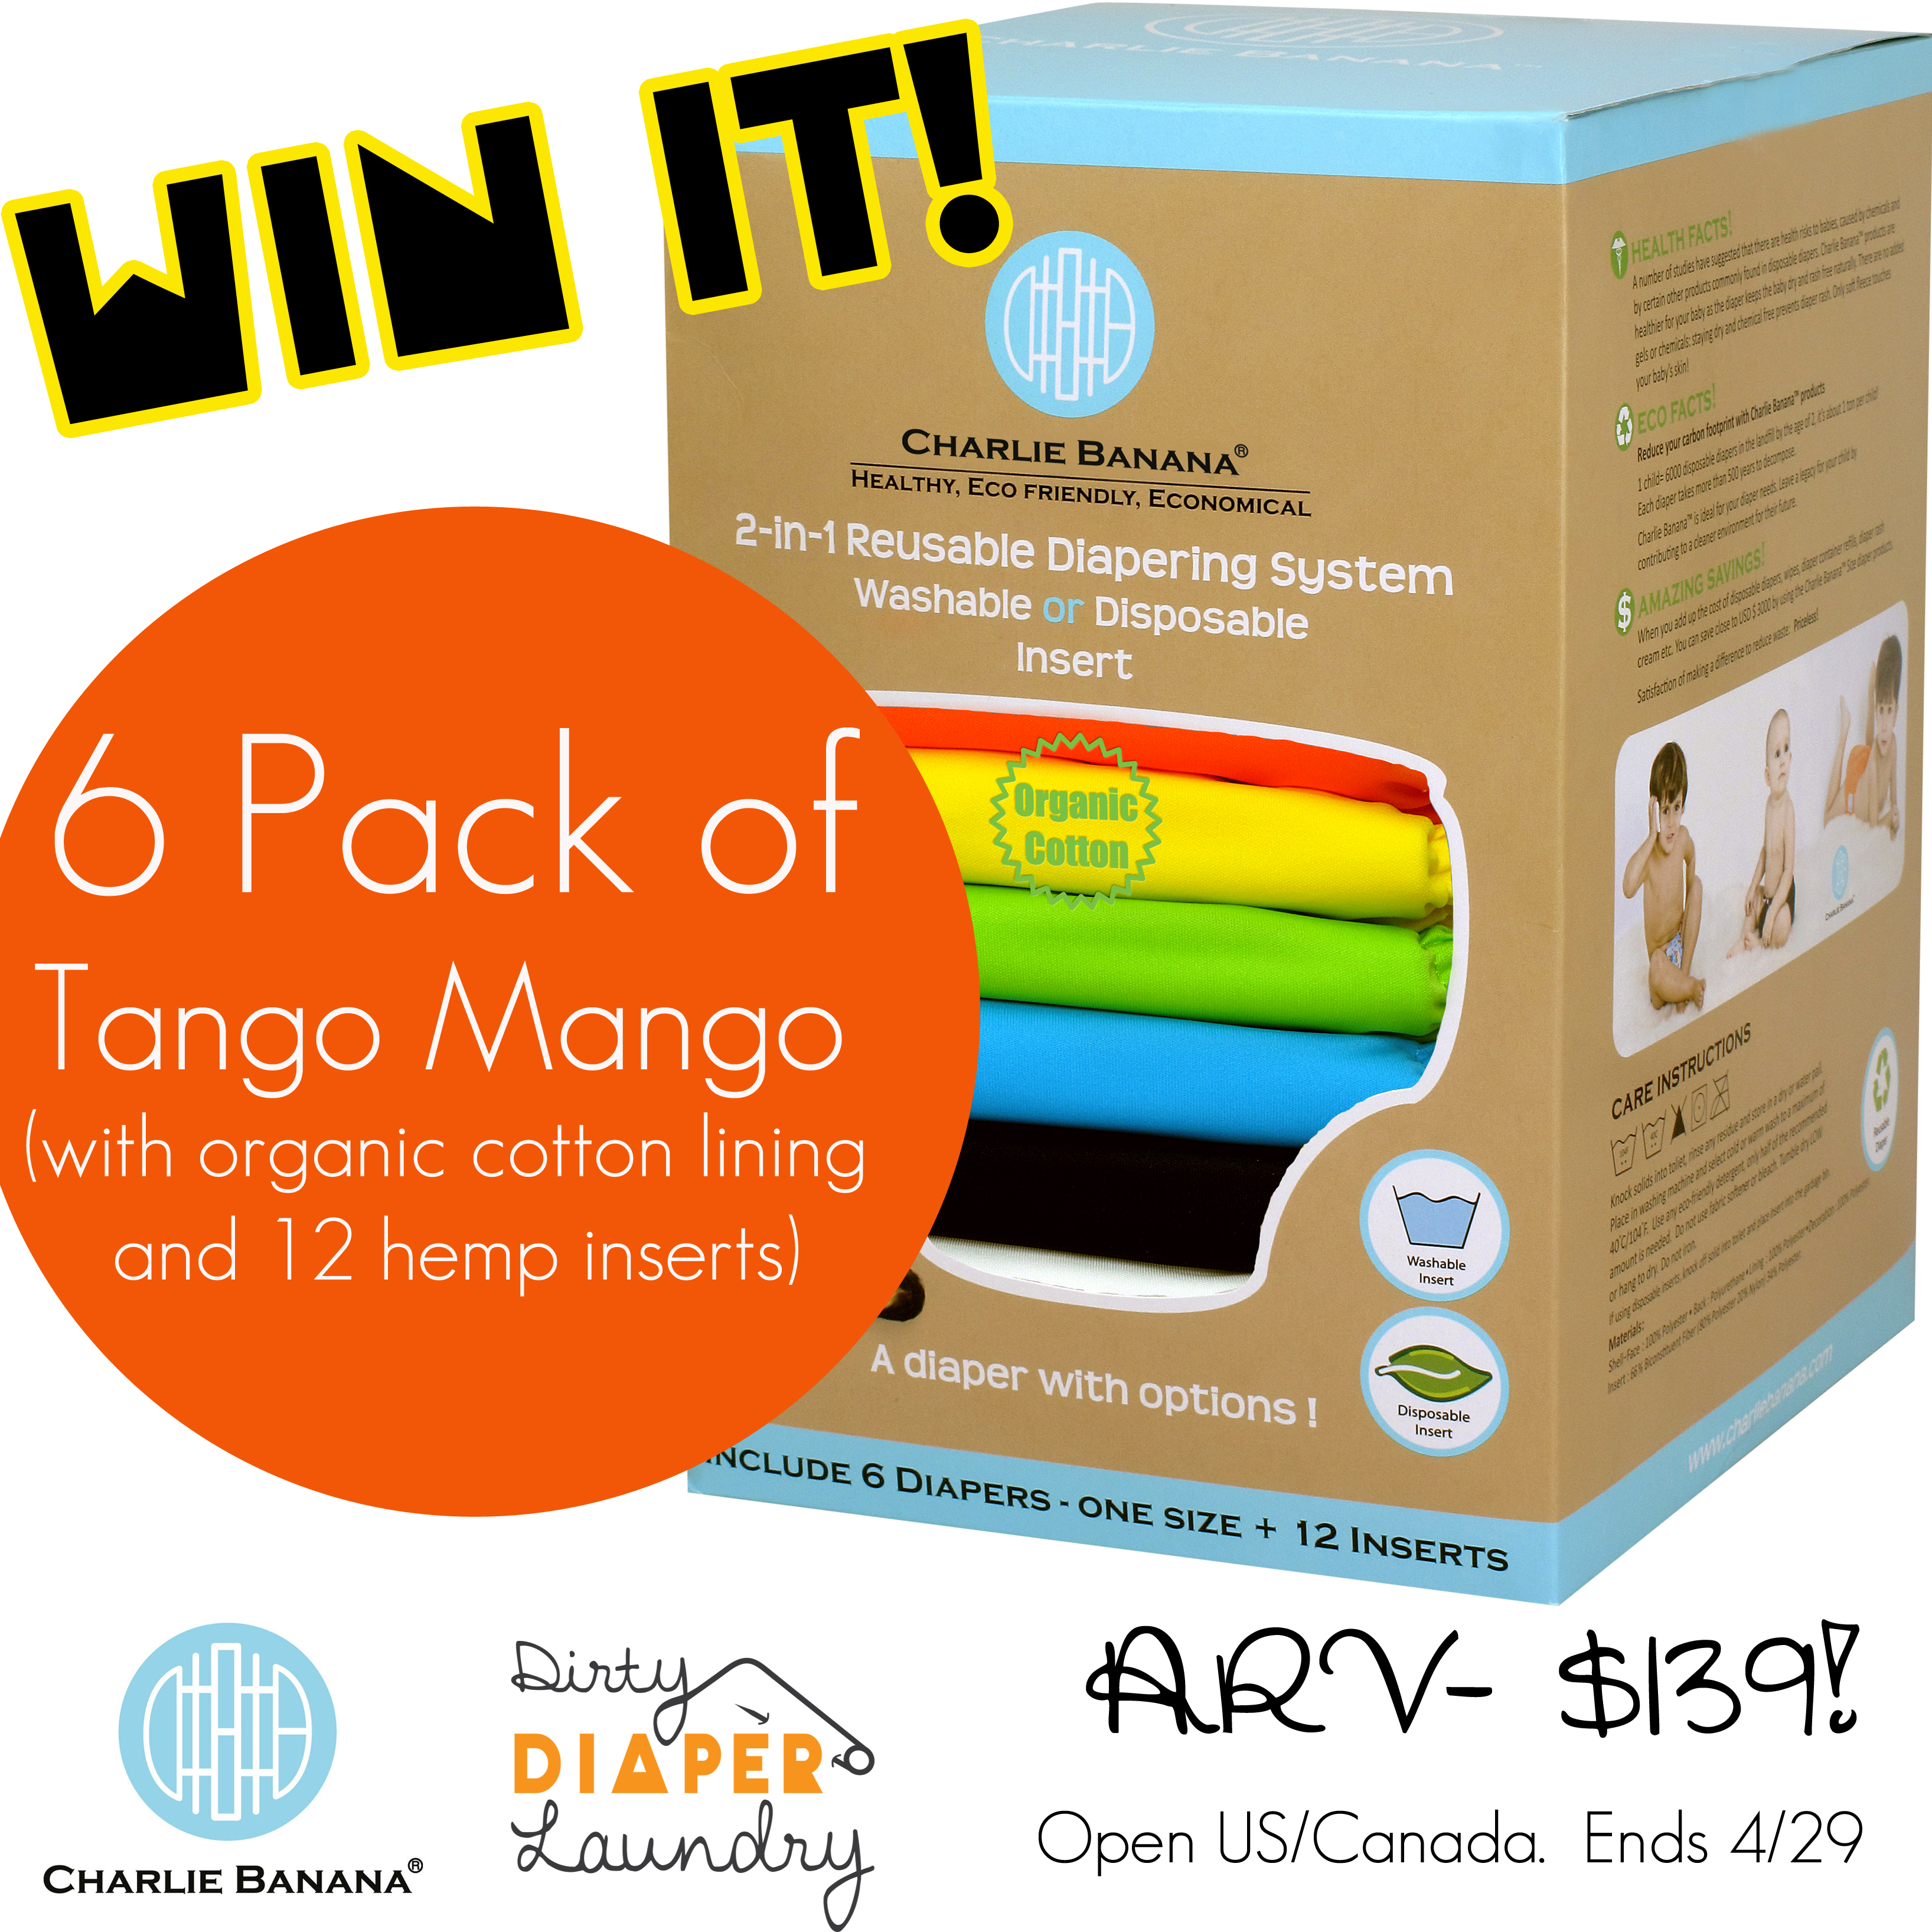 Win a 6 pack of Charlie Banana cloth diapers from Dirty Diaper Laundry